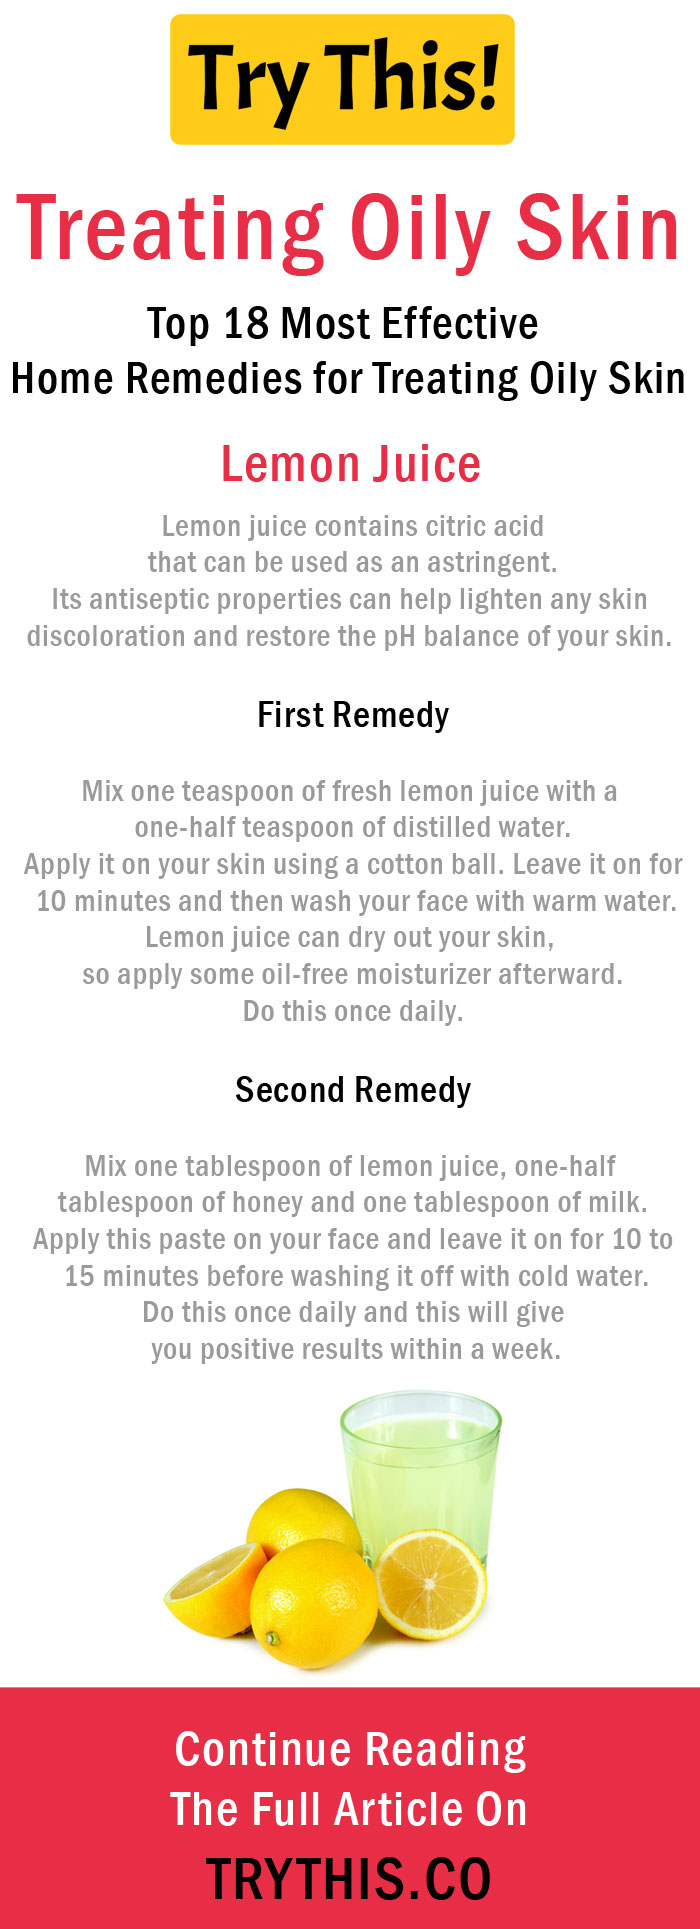 Home Remedies for Treating Oily Skin - Lemon Juice